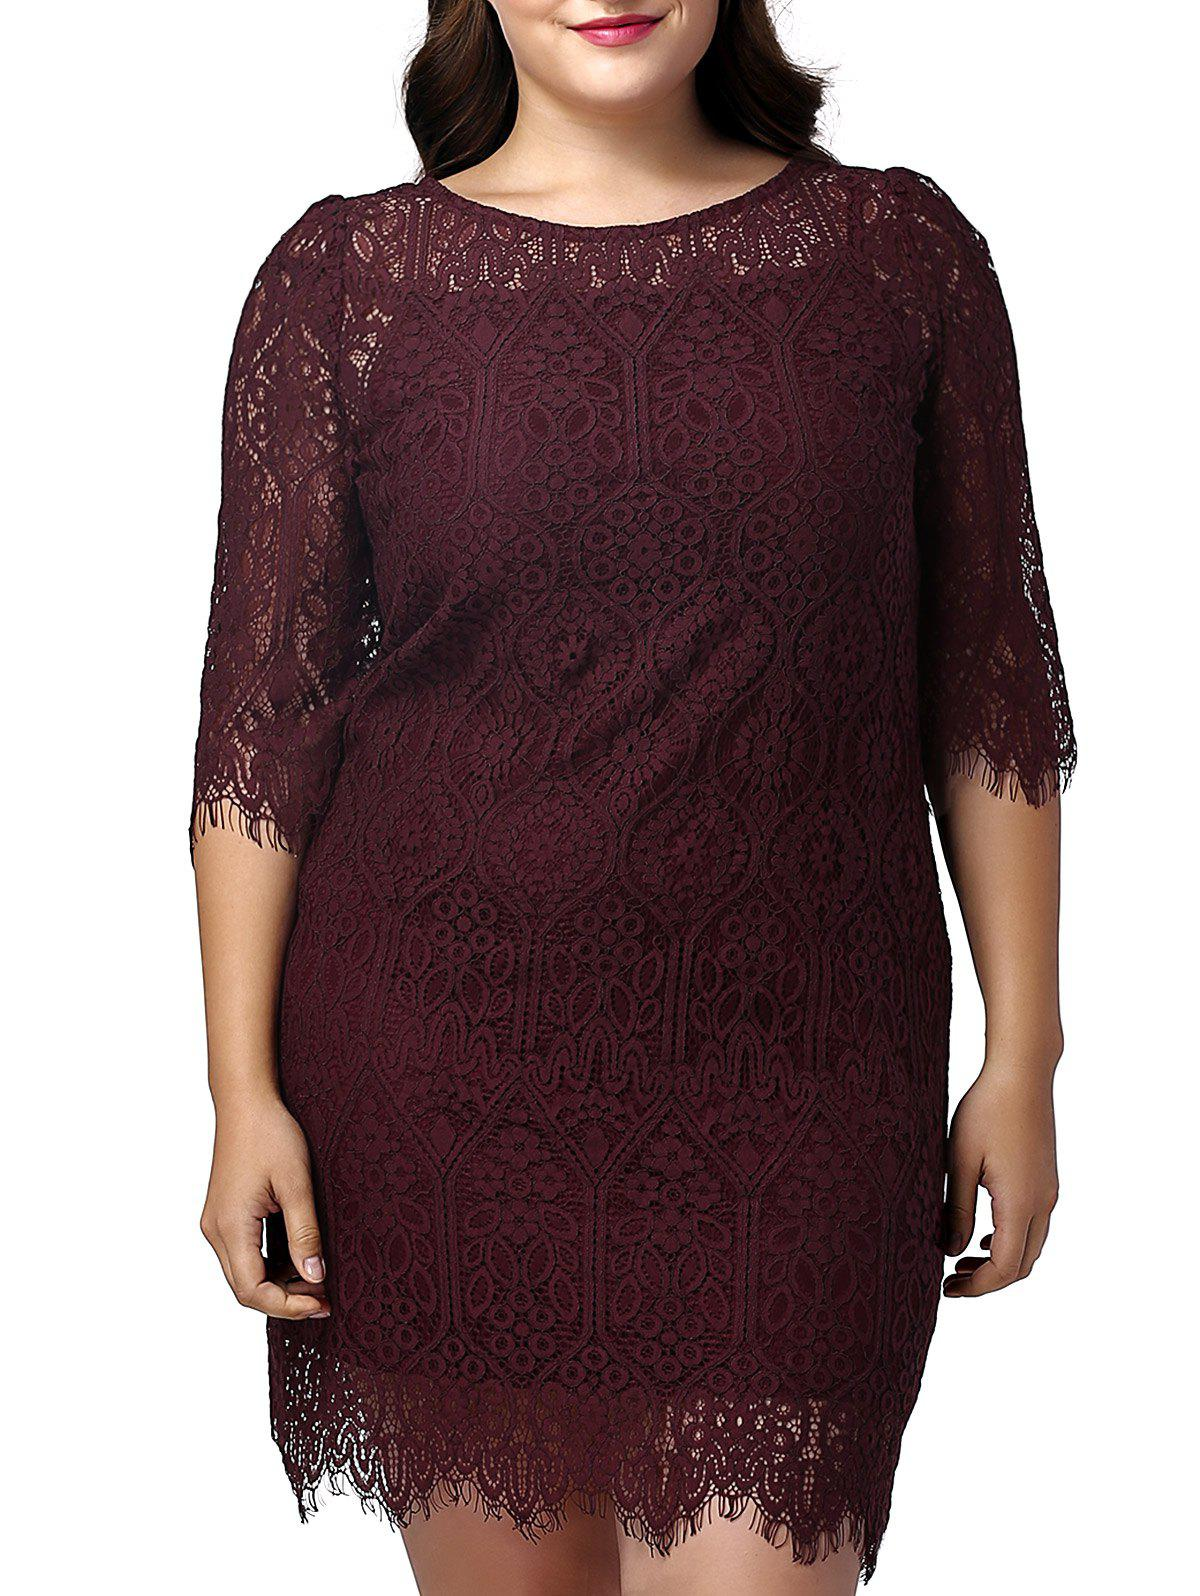 Sweet Plus Size Bodycon Half Sleeve Lace Design Women's Dress - WINE RED 3XL